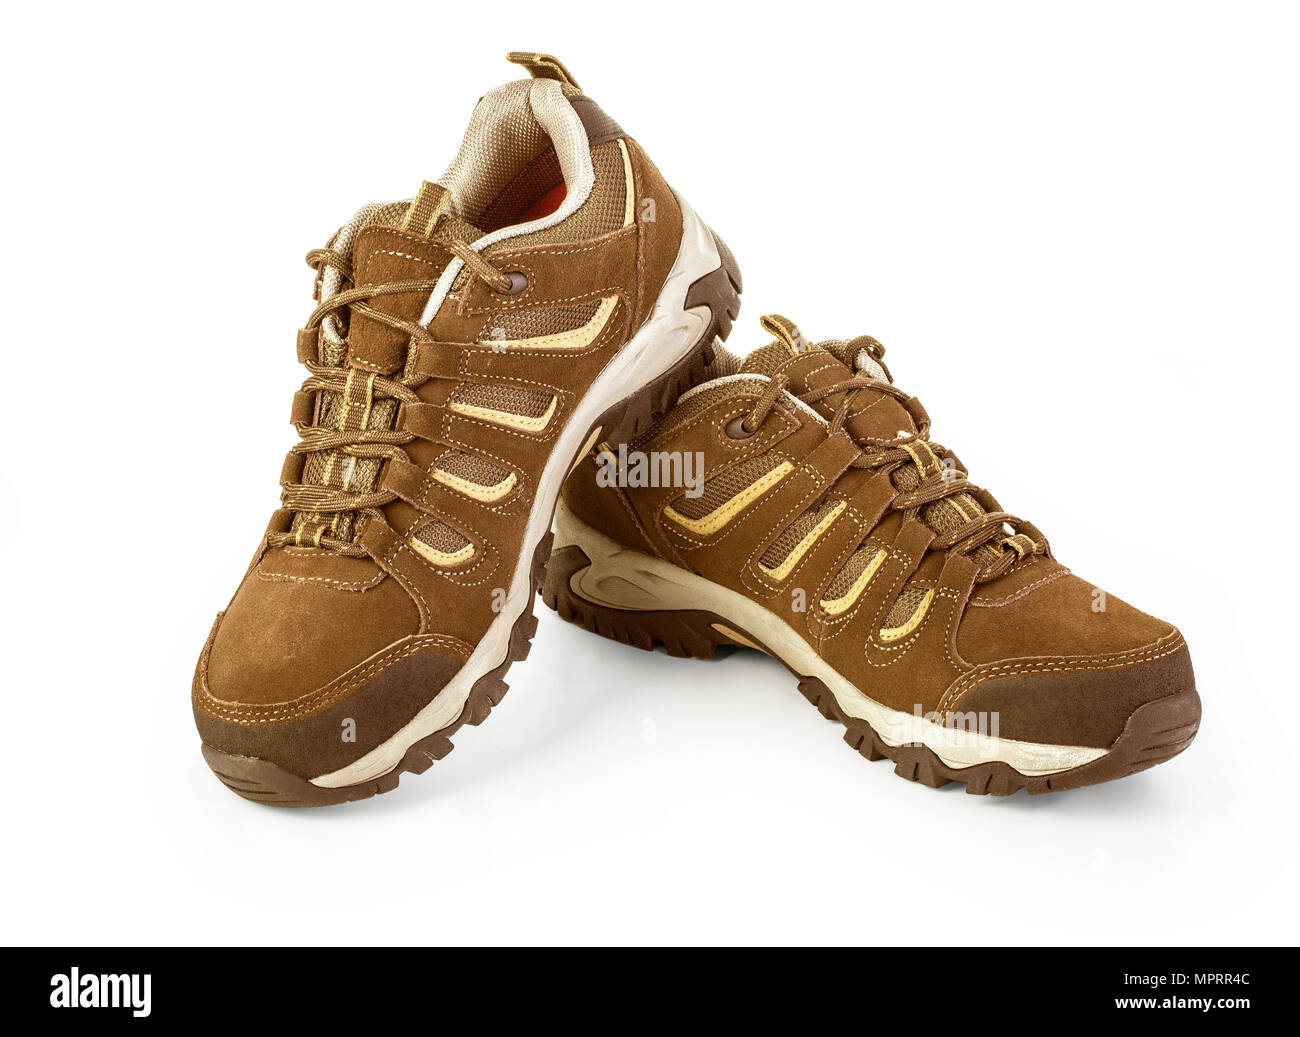 Unbranded modern sneakers isolated on a white background. with clipping path - Stock Image